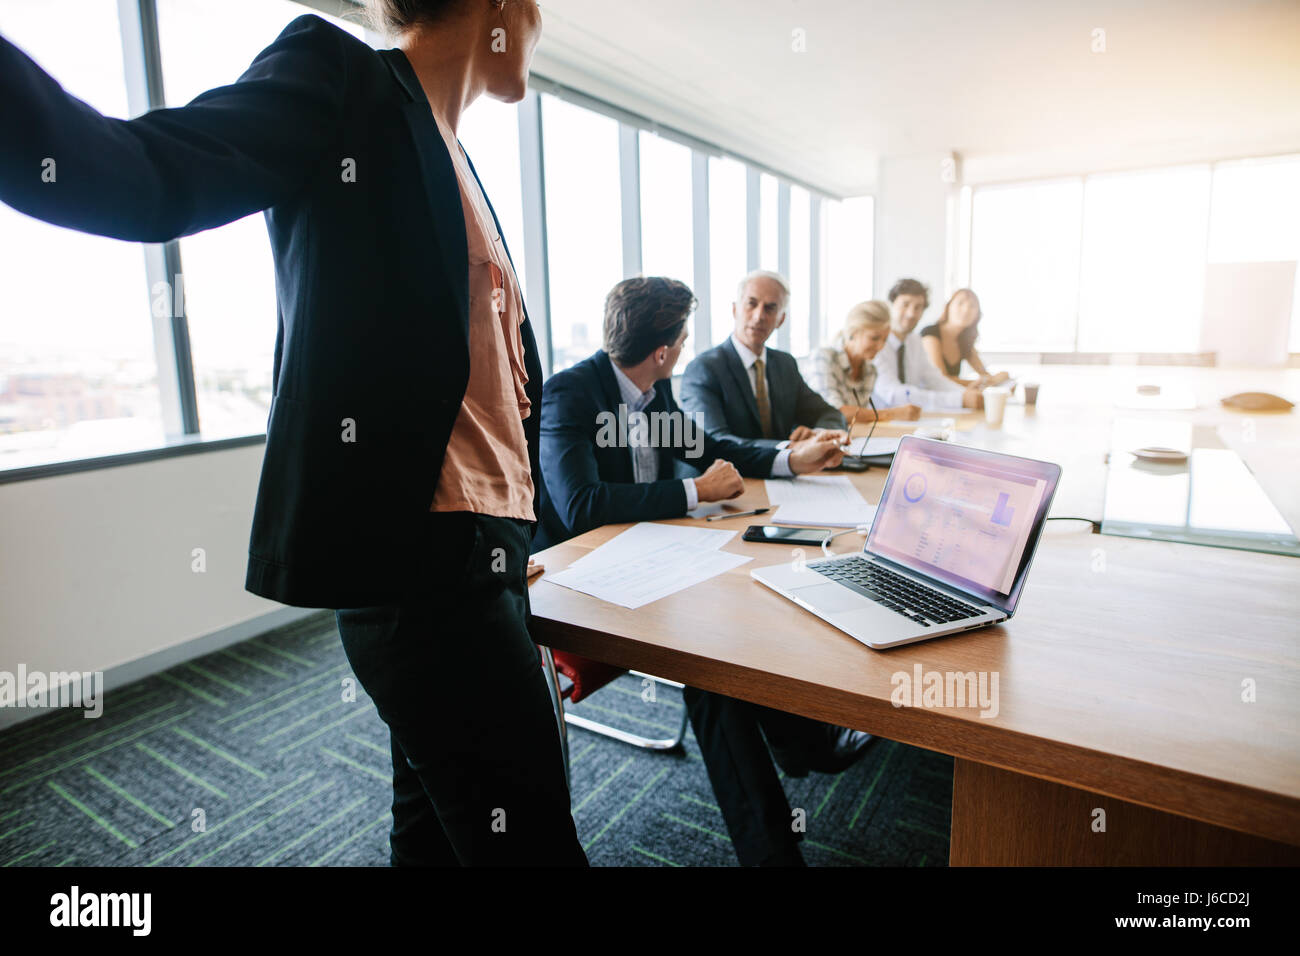 Corporate professionals have meeting in conference room and discussing about new business plans. Business associates - Stock Image